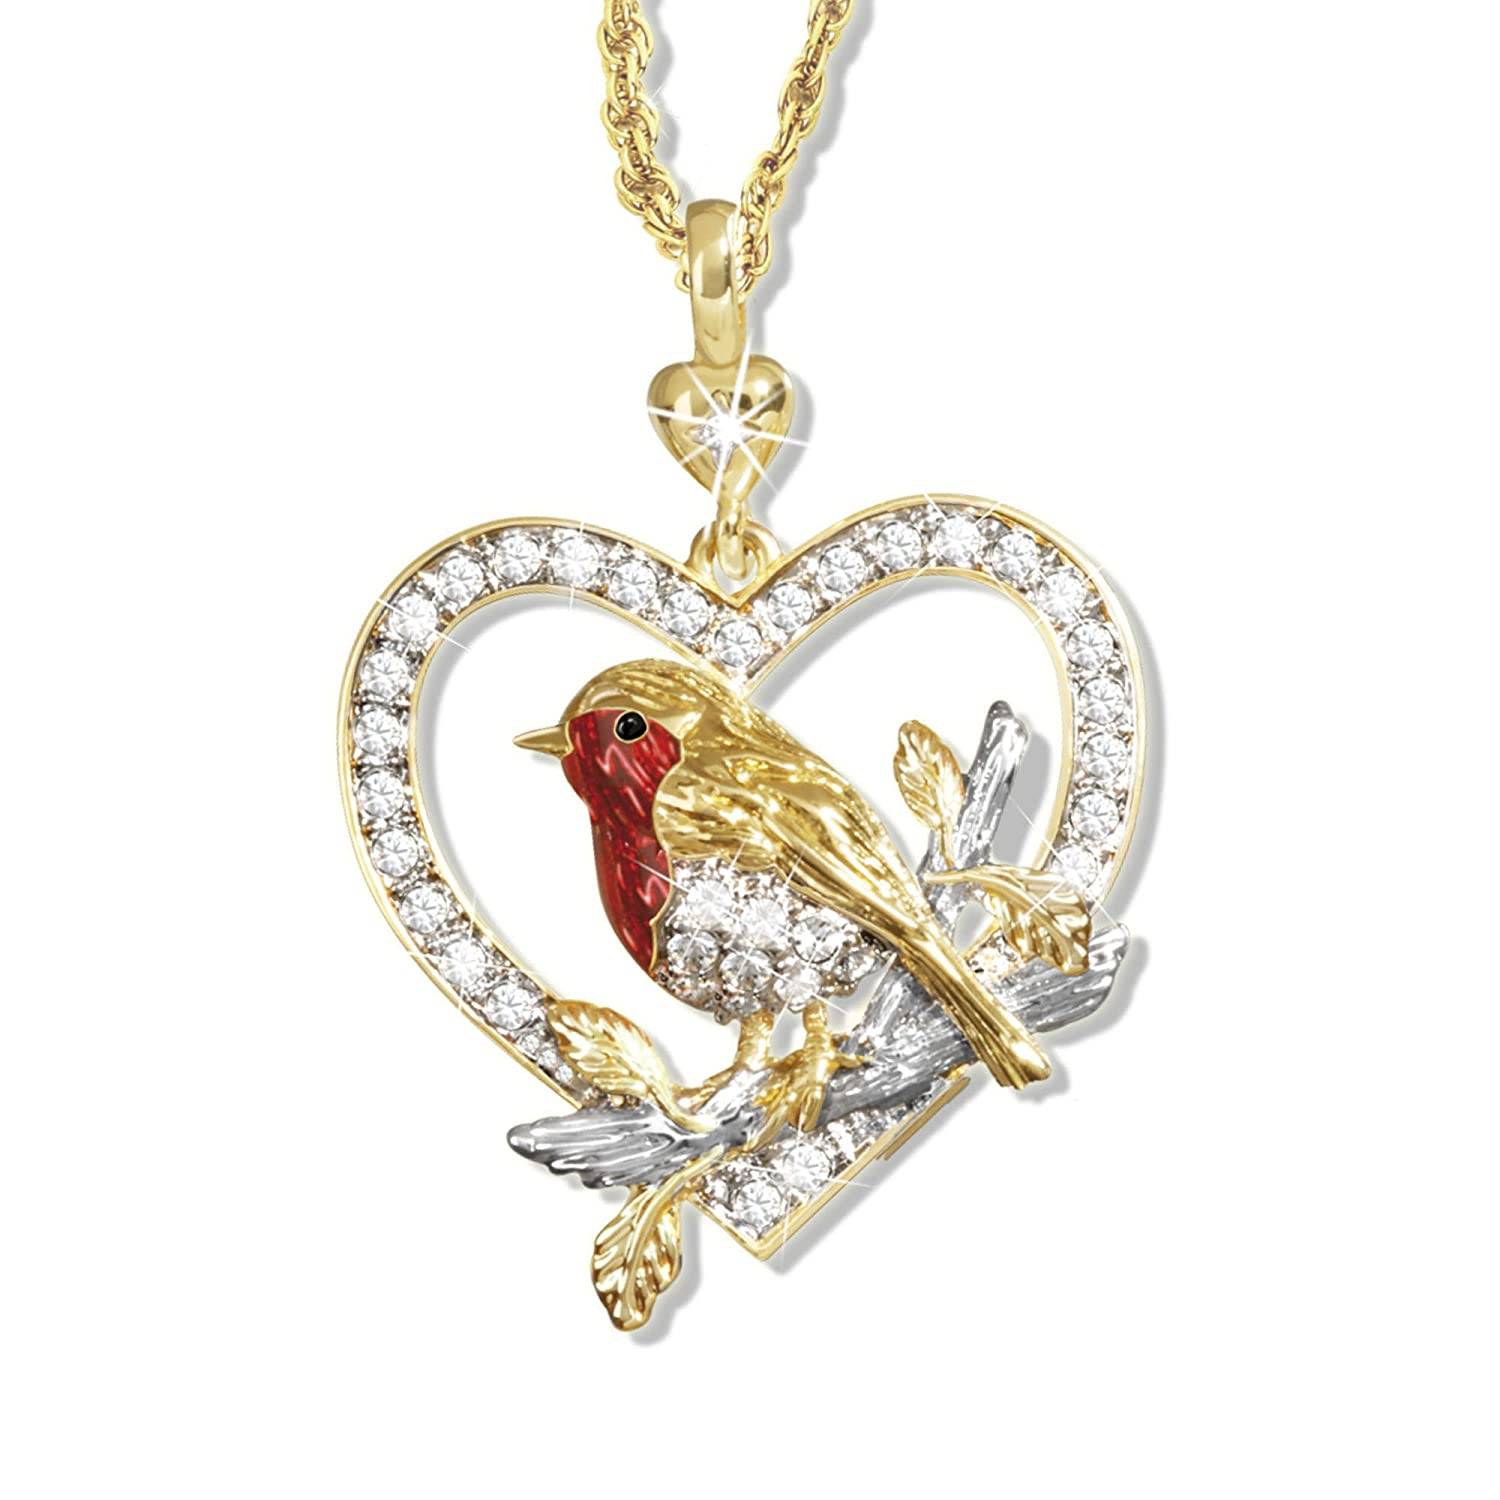 'Jewel Of Nature' Swarovski® Crystal Robin Pendant Plated In Rich 24-Carat Gold, And Showcasing Lustrous Enamel And A Genuine Diamond Exclusively Available From The Bradford Exchange 5060460218563